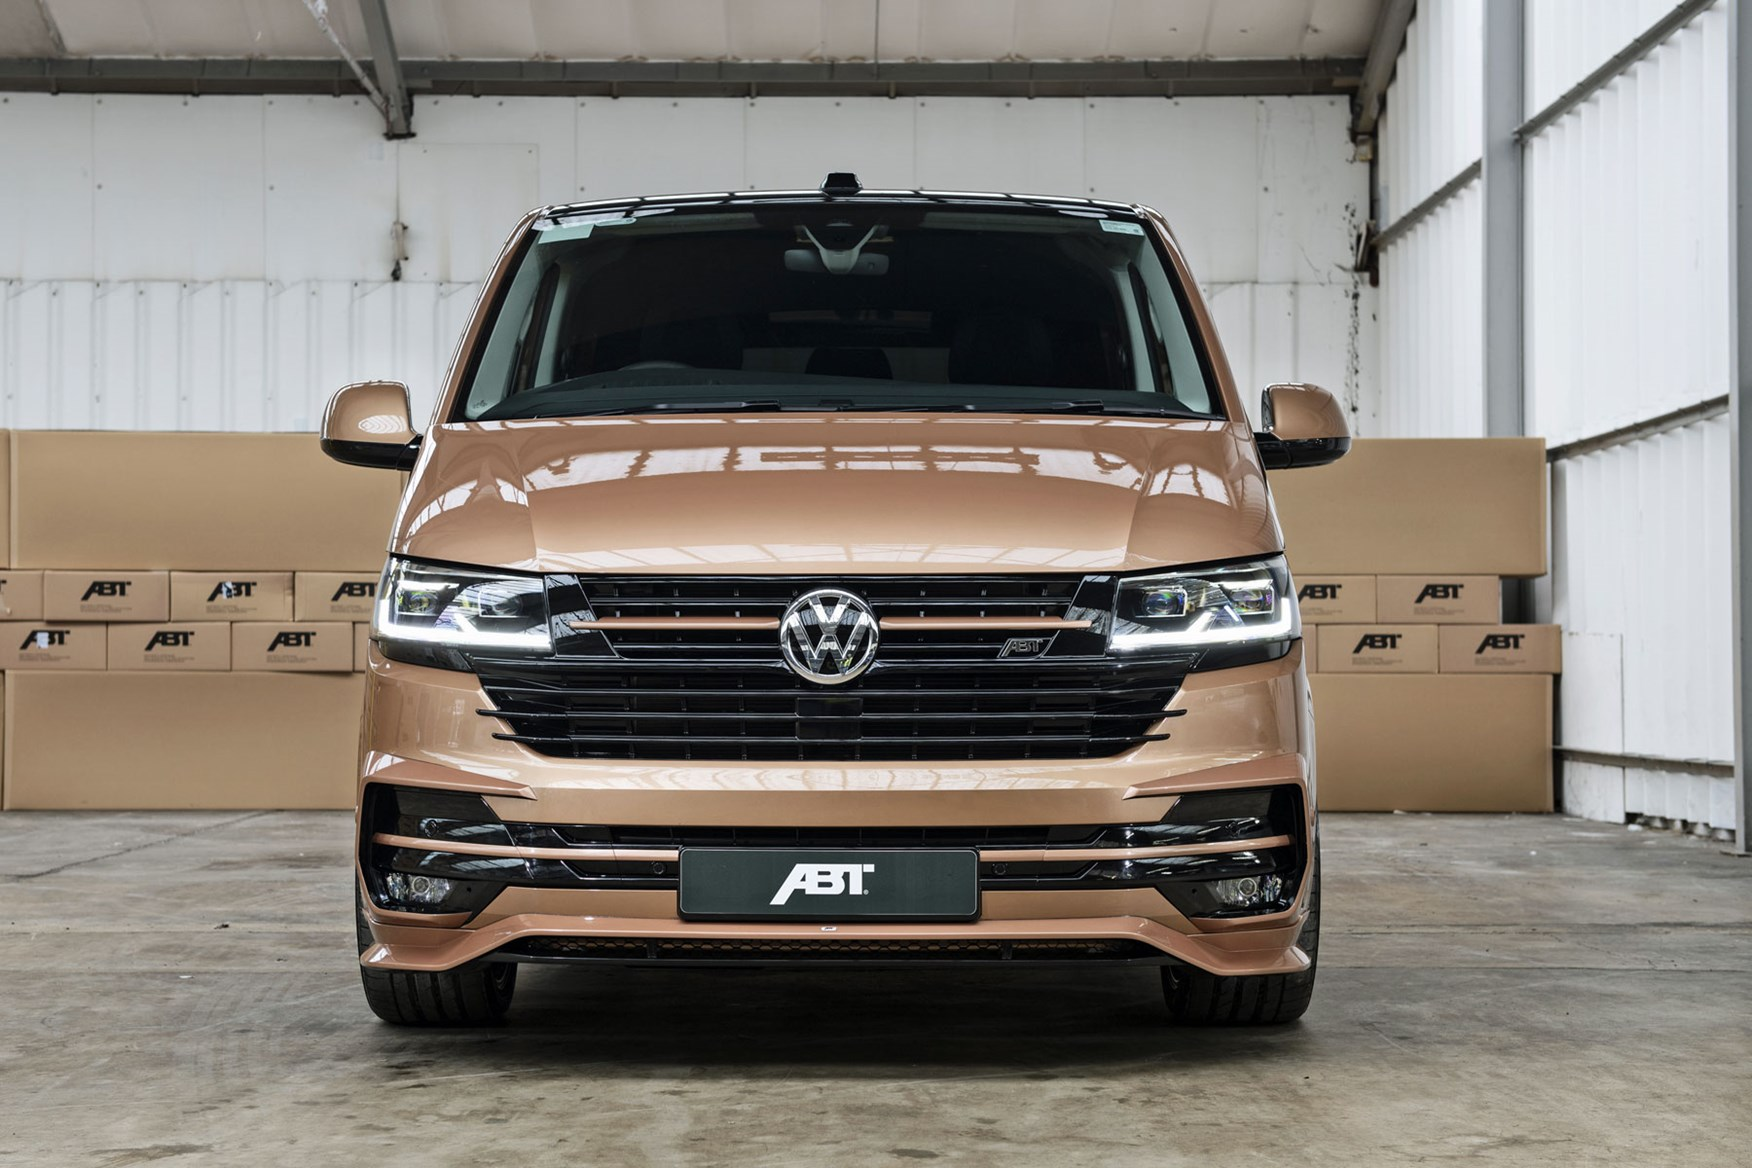 New Abt Vw Transporter T6 1 Tuning Upgrade With 226hp Parkers